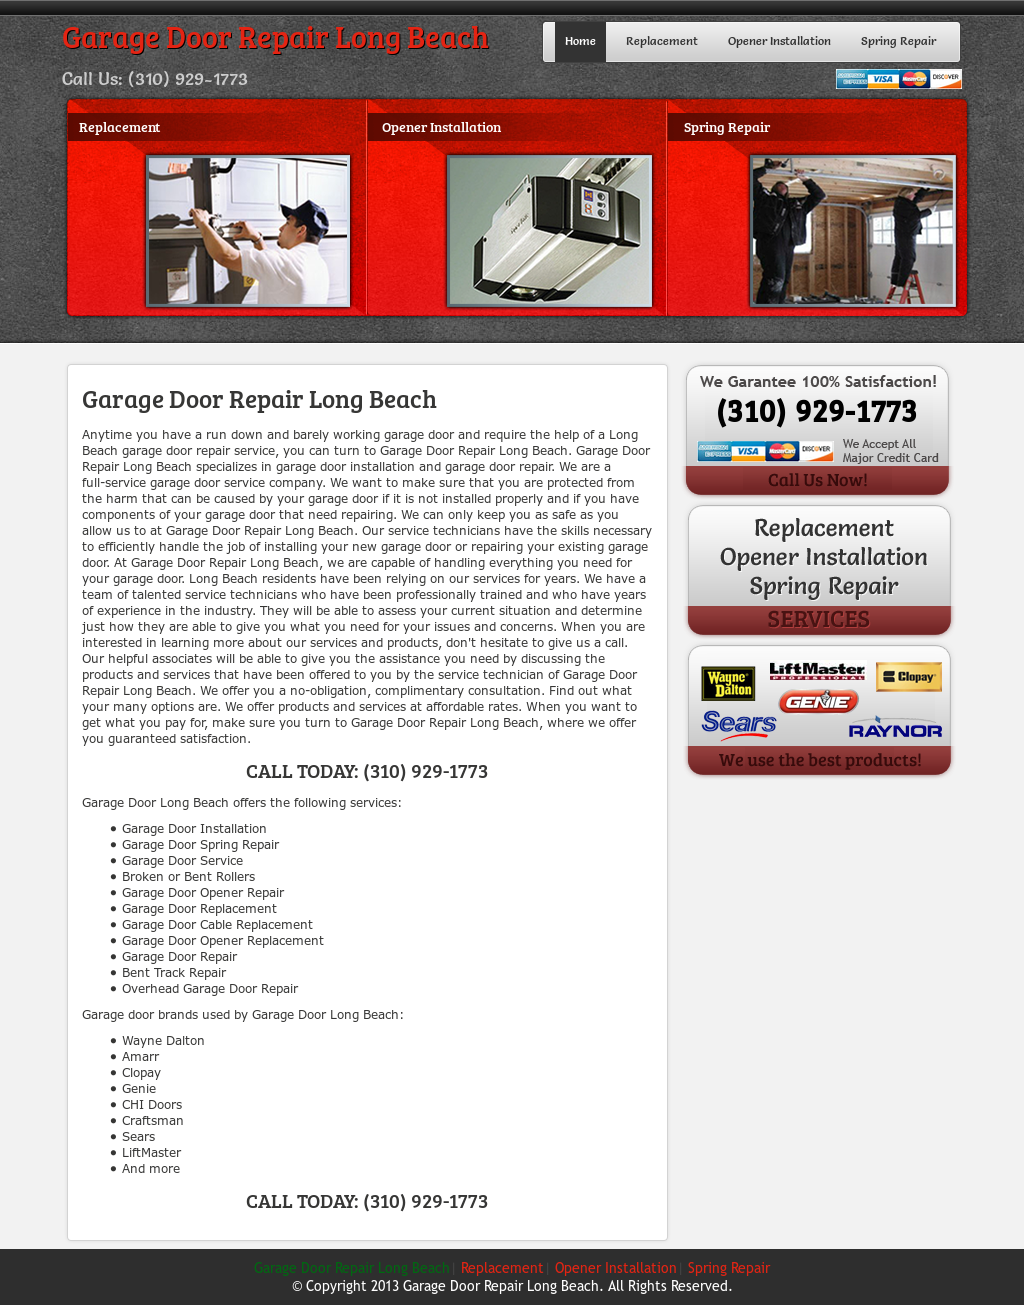 Garage Door Repair Long Beach Website History